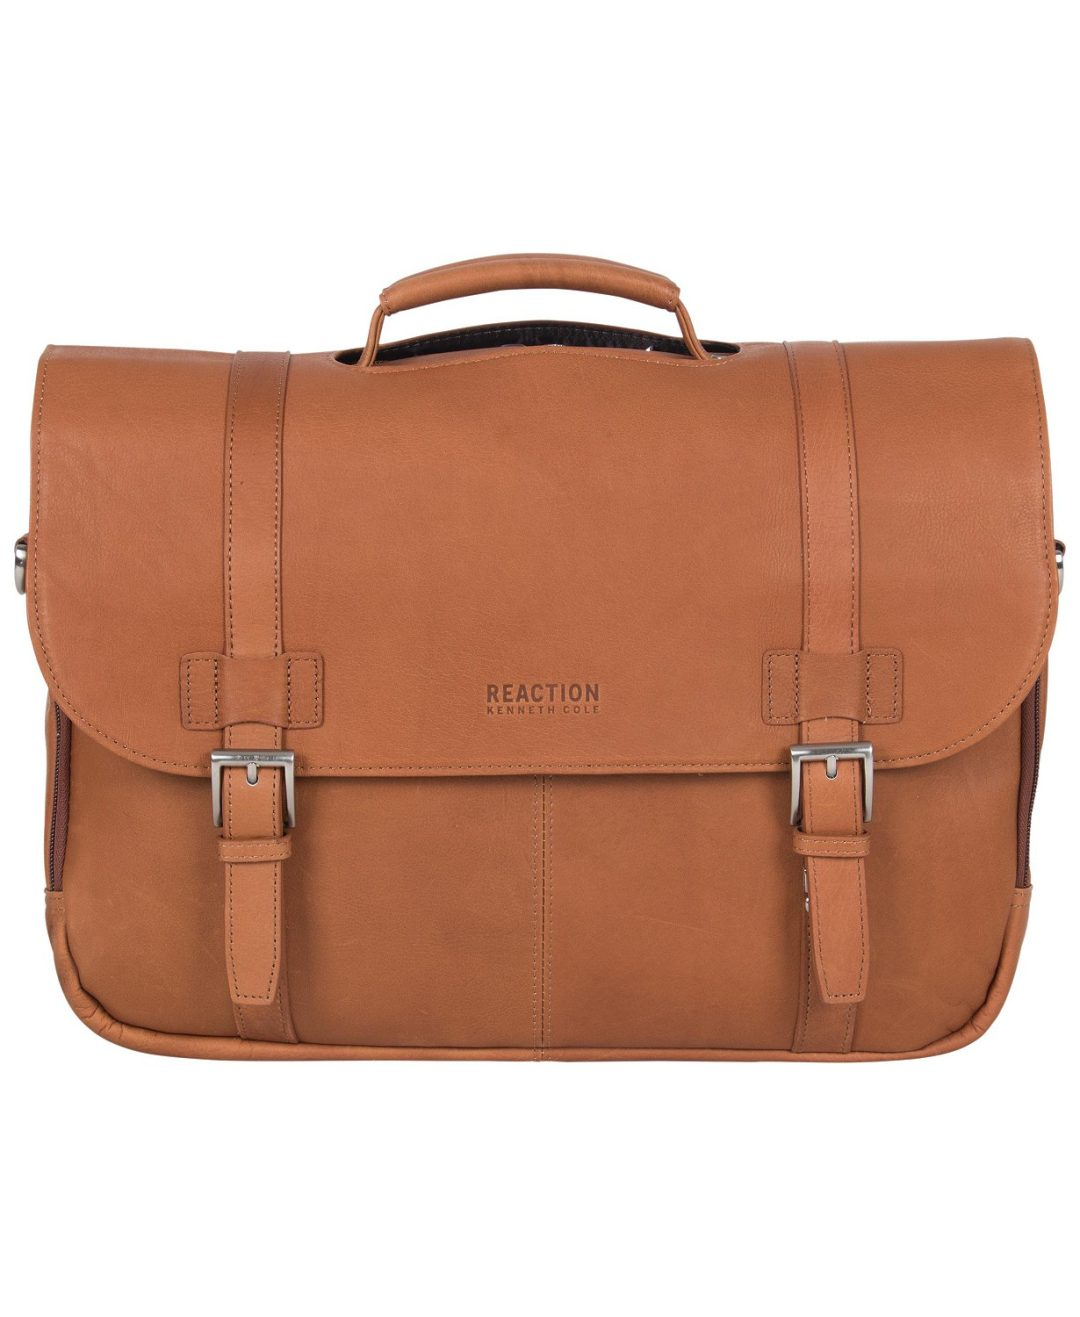 The best expensive gifts for male boss: high end laptop bag